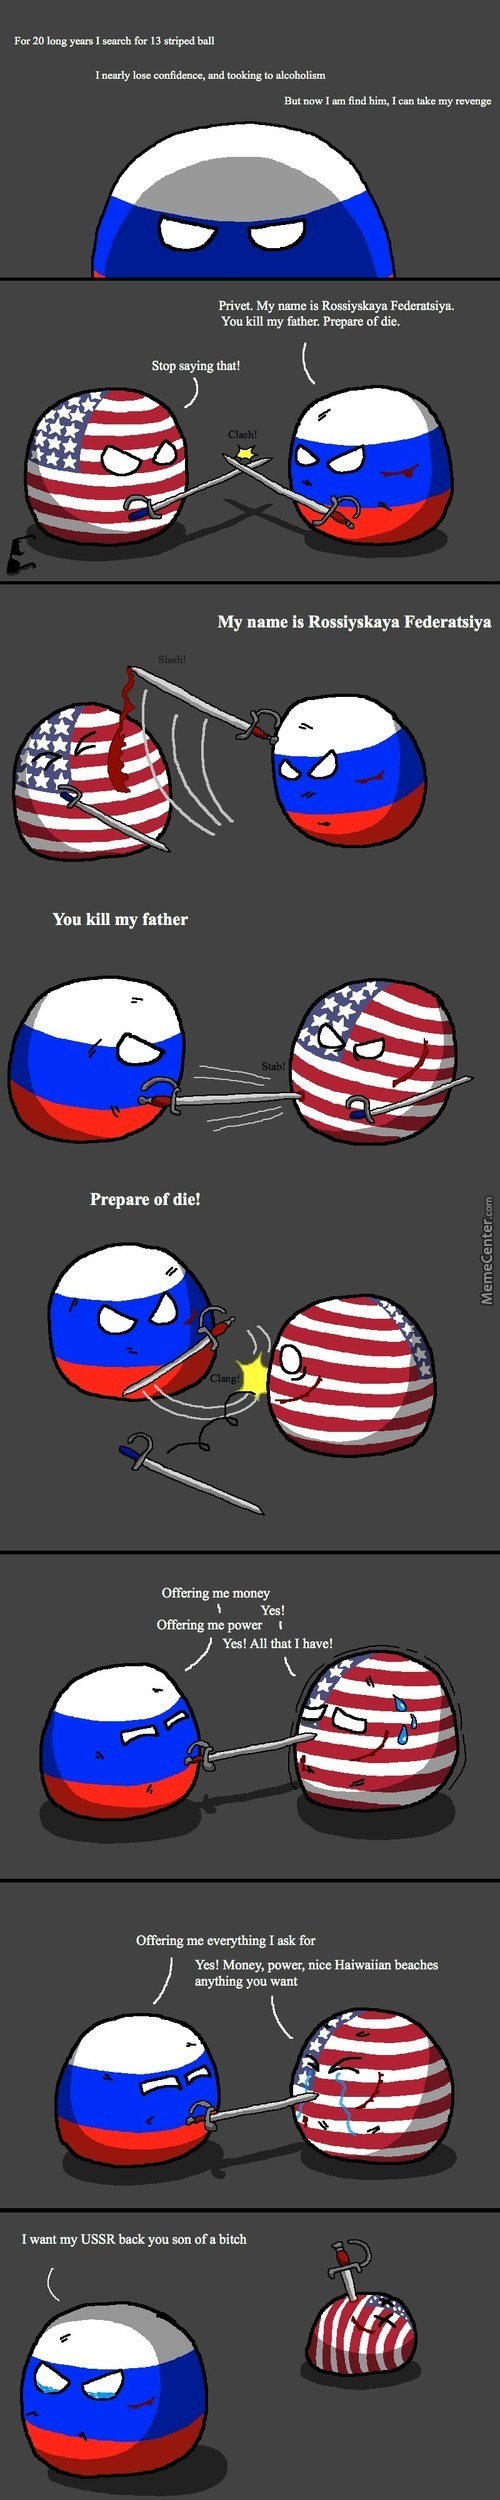 The People Who Make These Don't Understand How Capitalistc Russia Have Become, It's Trully Sad